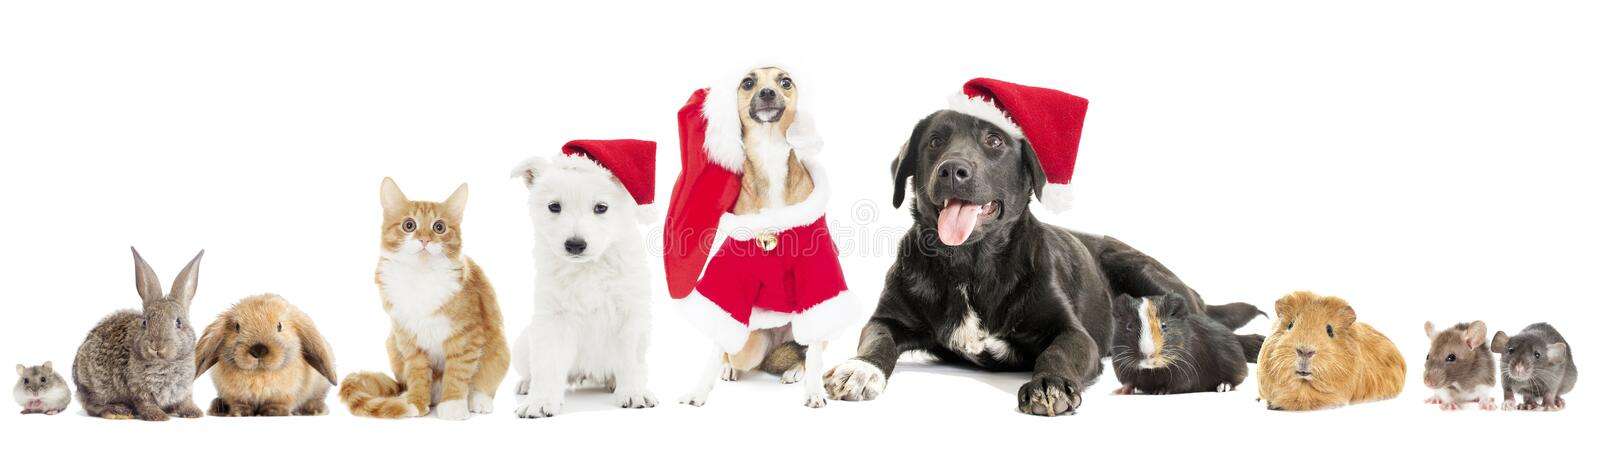 Set pet in a Christmas hat. On a white background stock photo